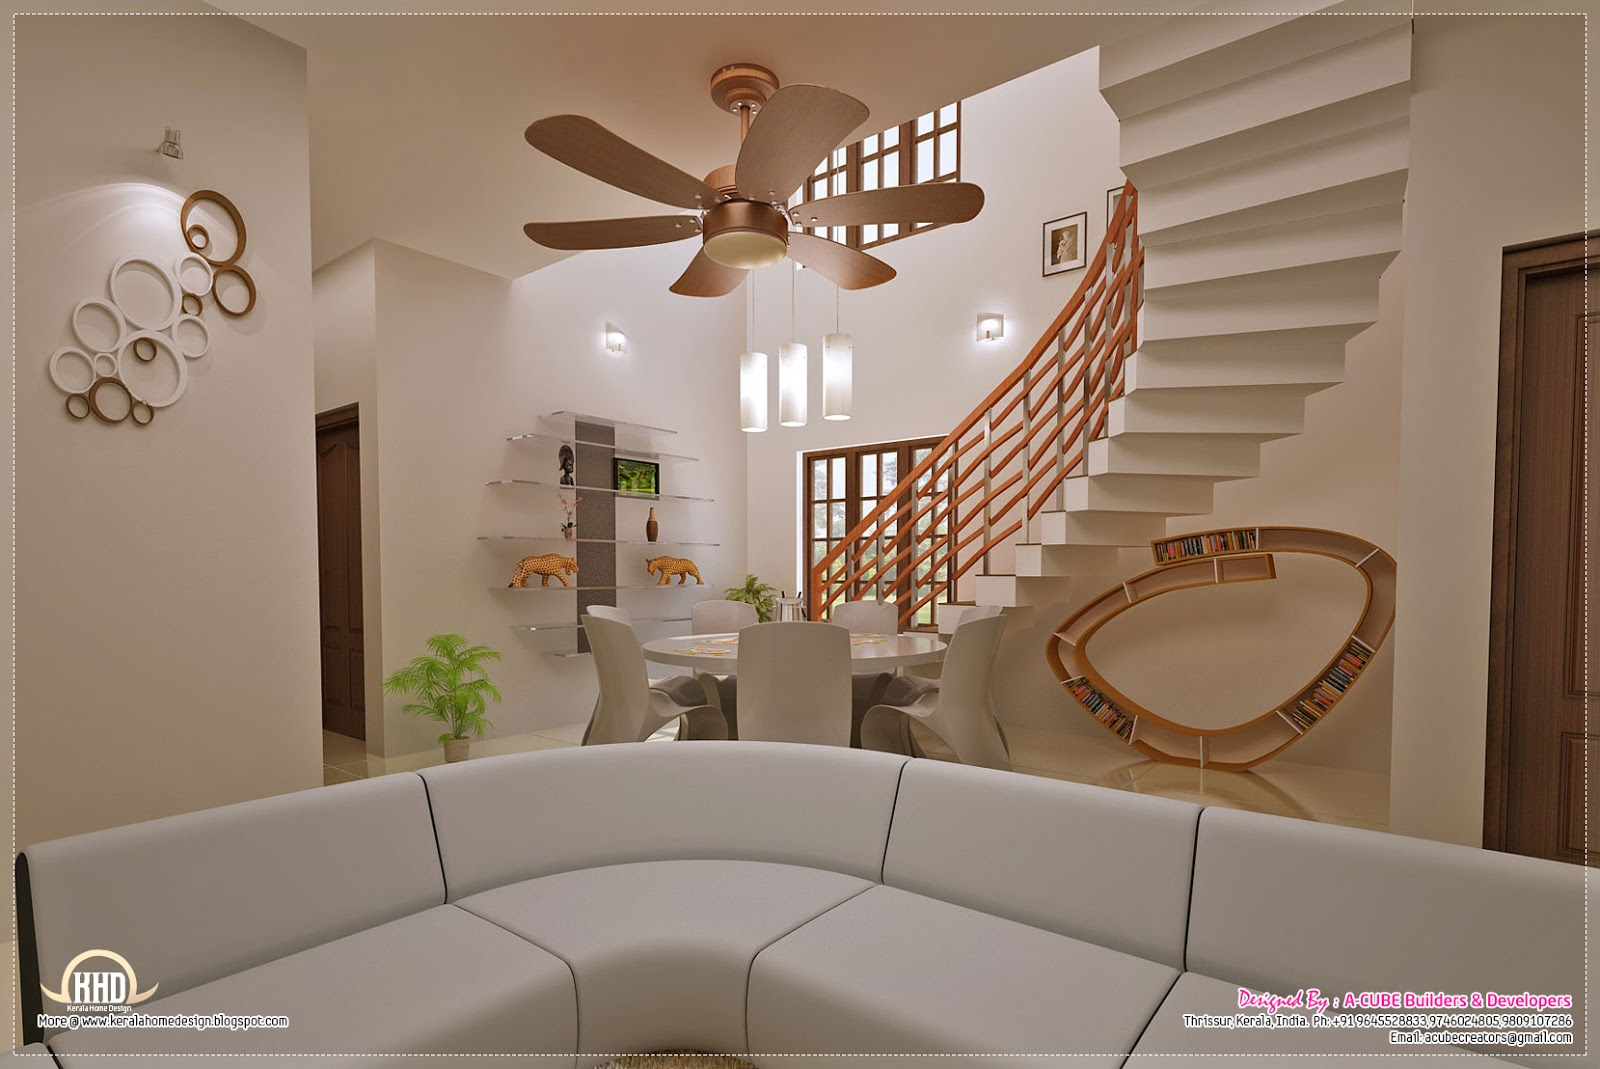 Ground Floor Elevation With Staircase : Awesome interior decoration ideas kerala home design and